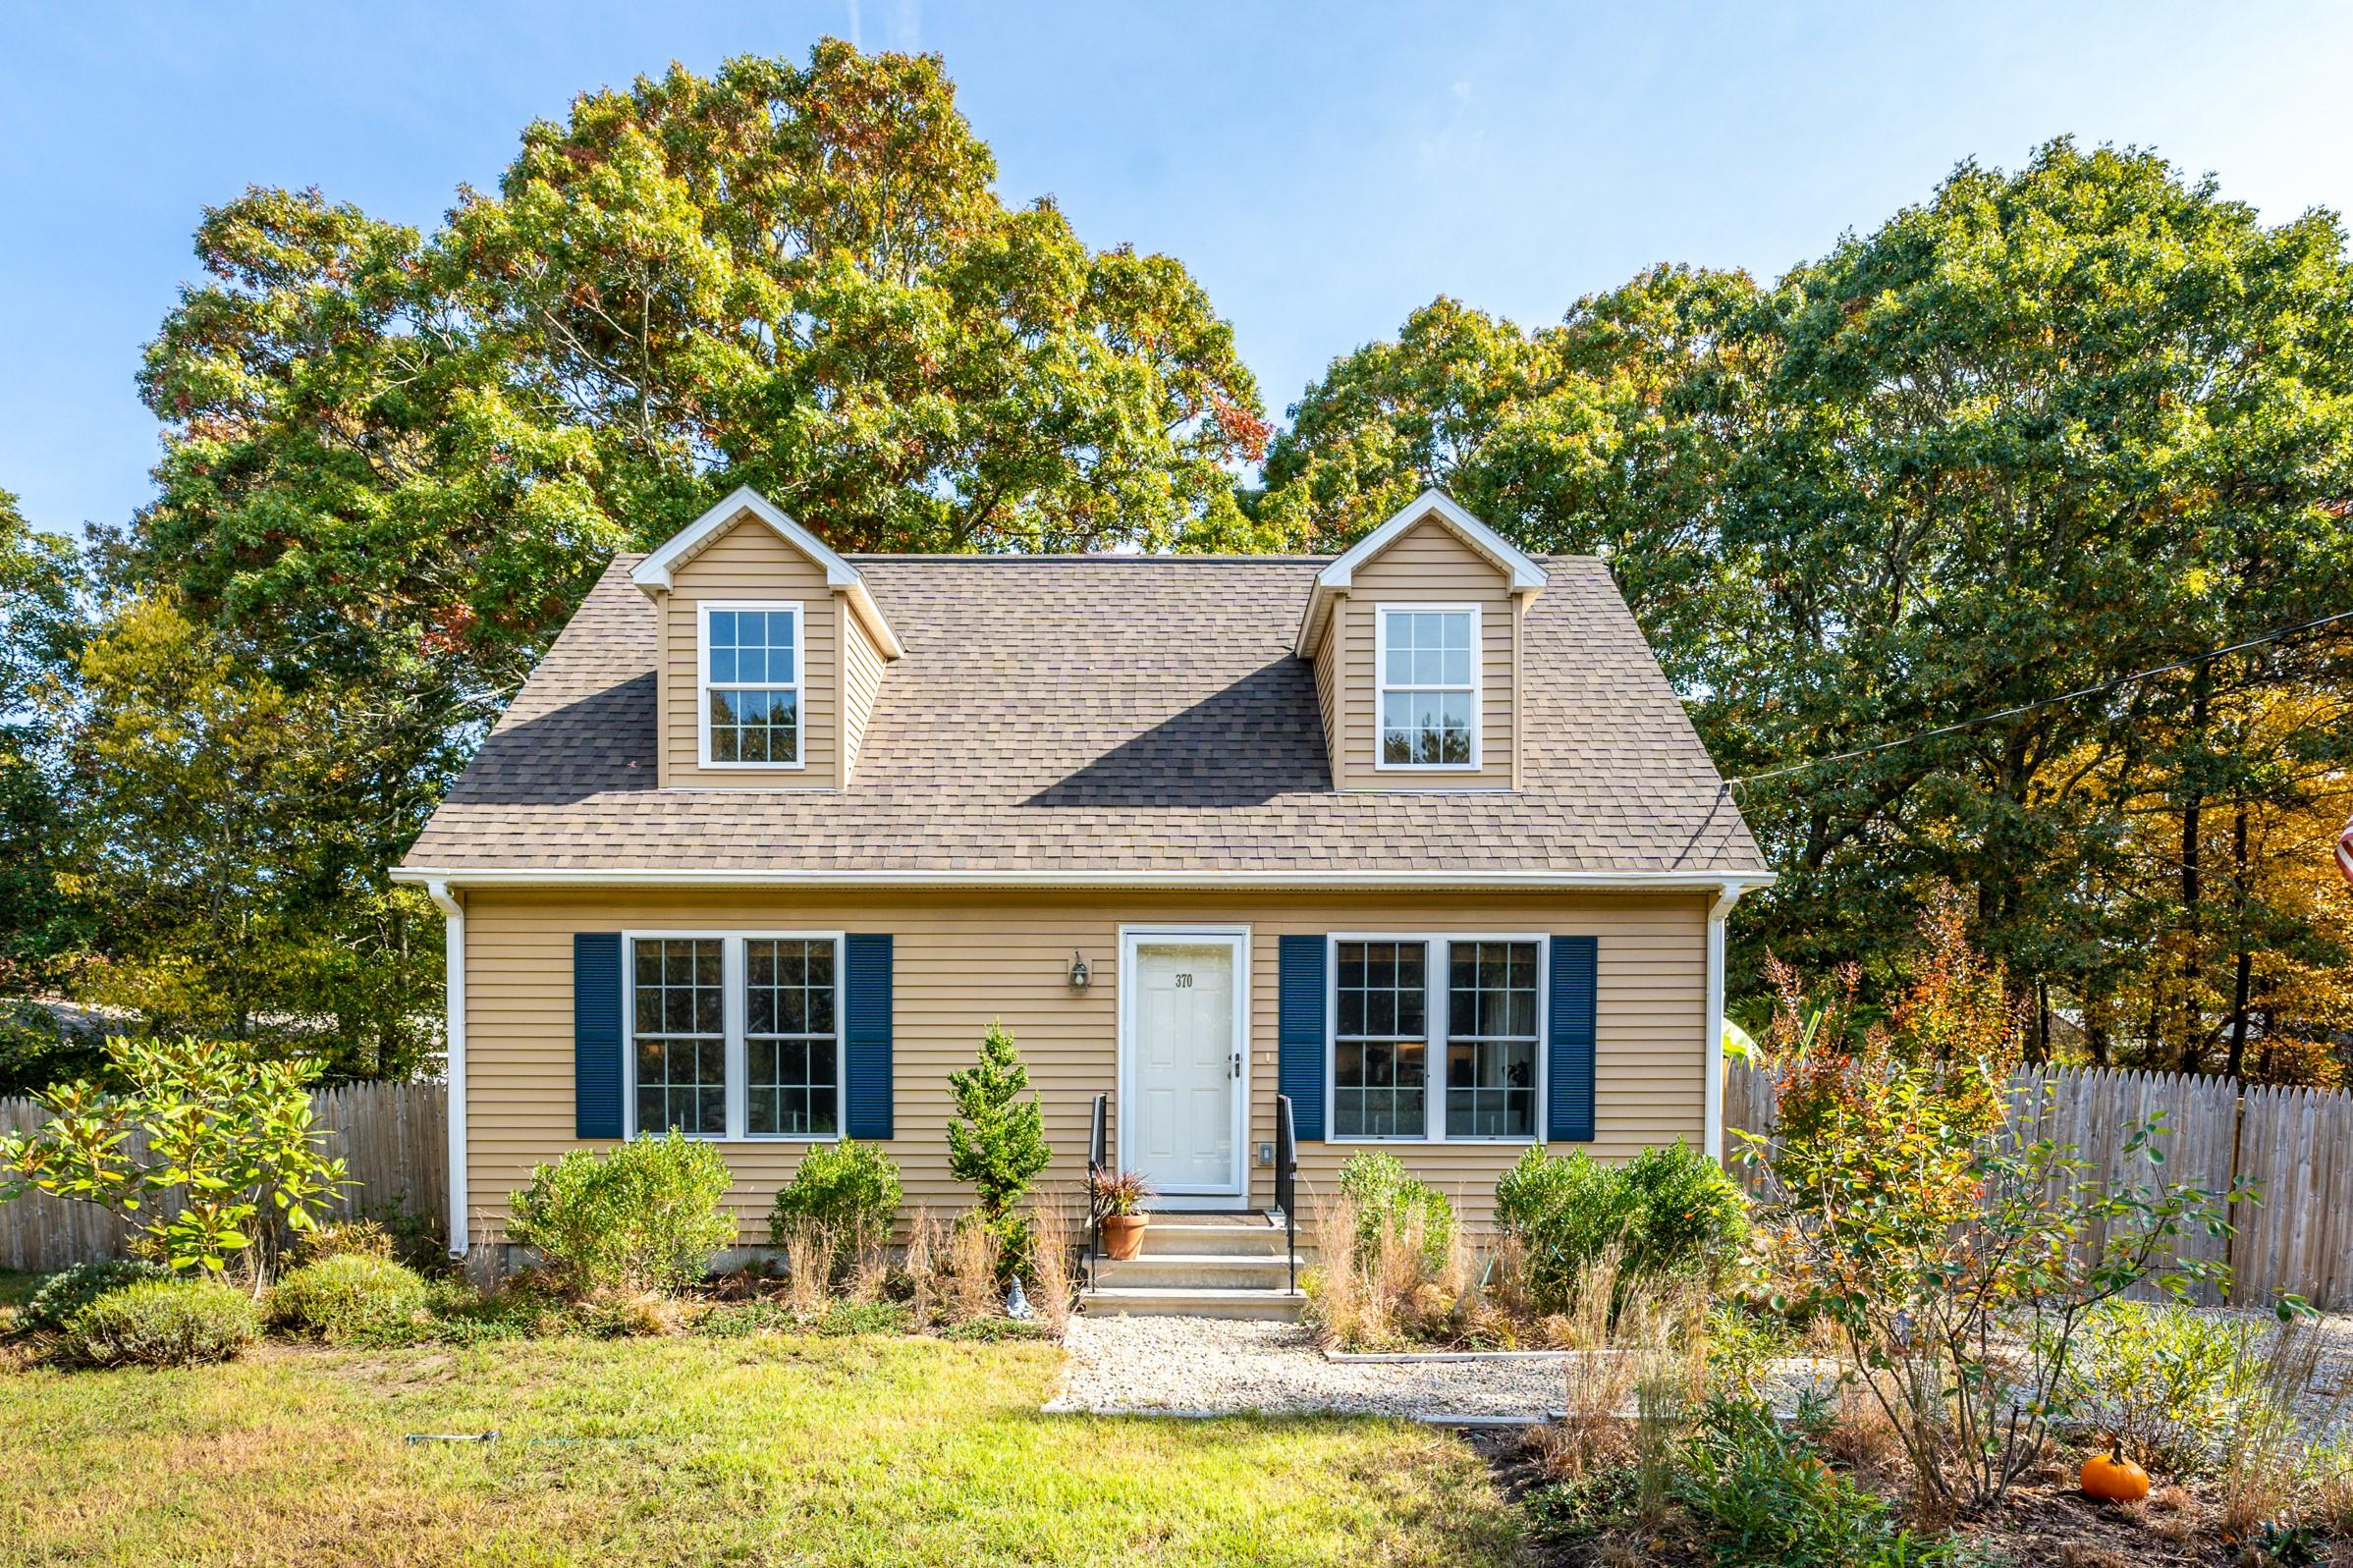 370 Camp Street, West Yarmouth MA, 02673 details